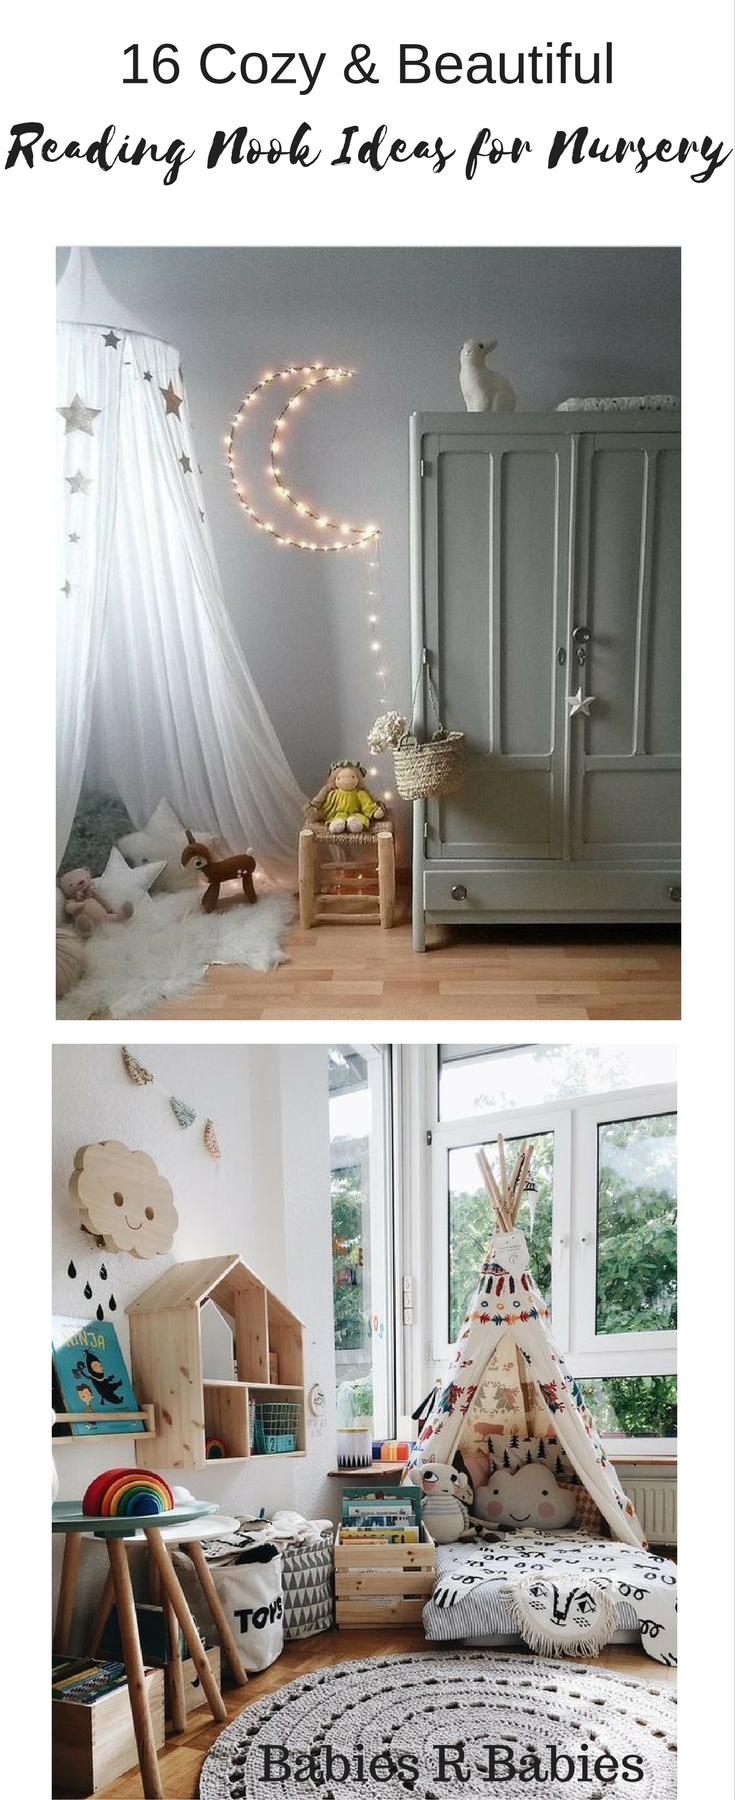 16 Cozy and Beautiful Reading Nook Ideas for Baby's Nursery